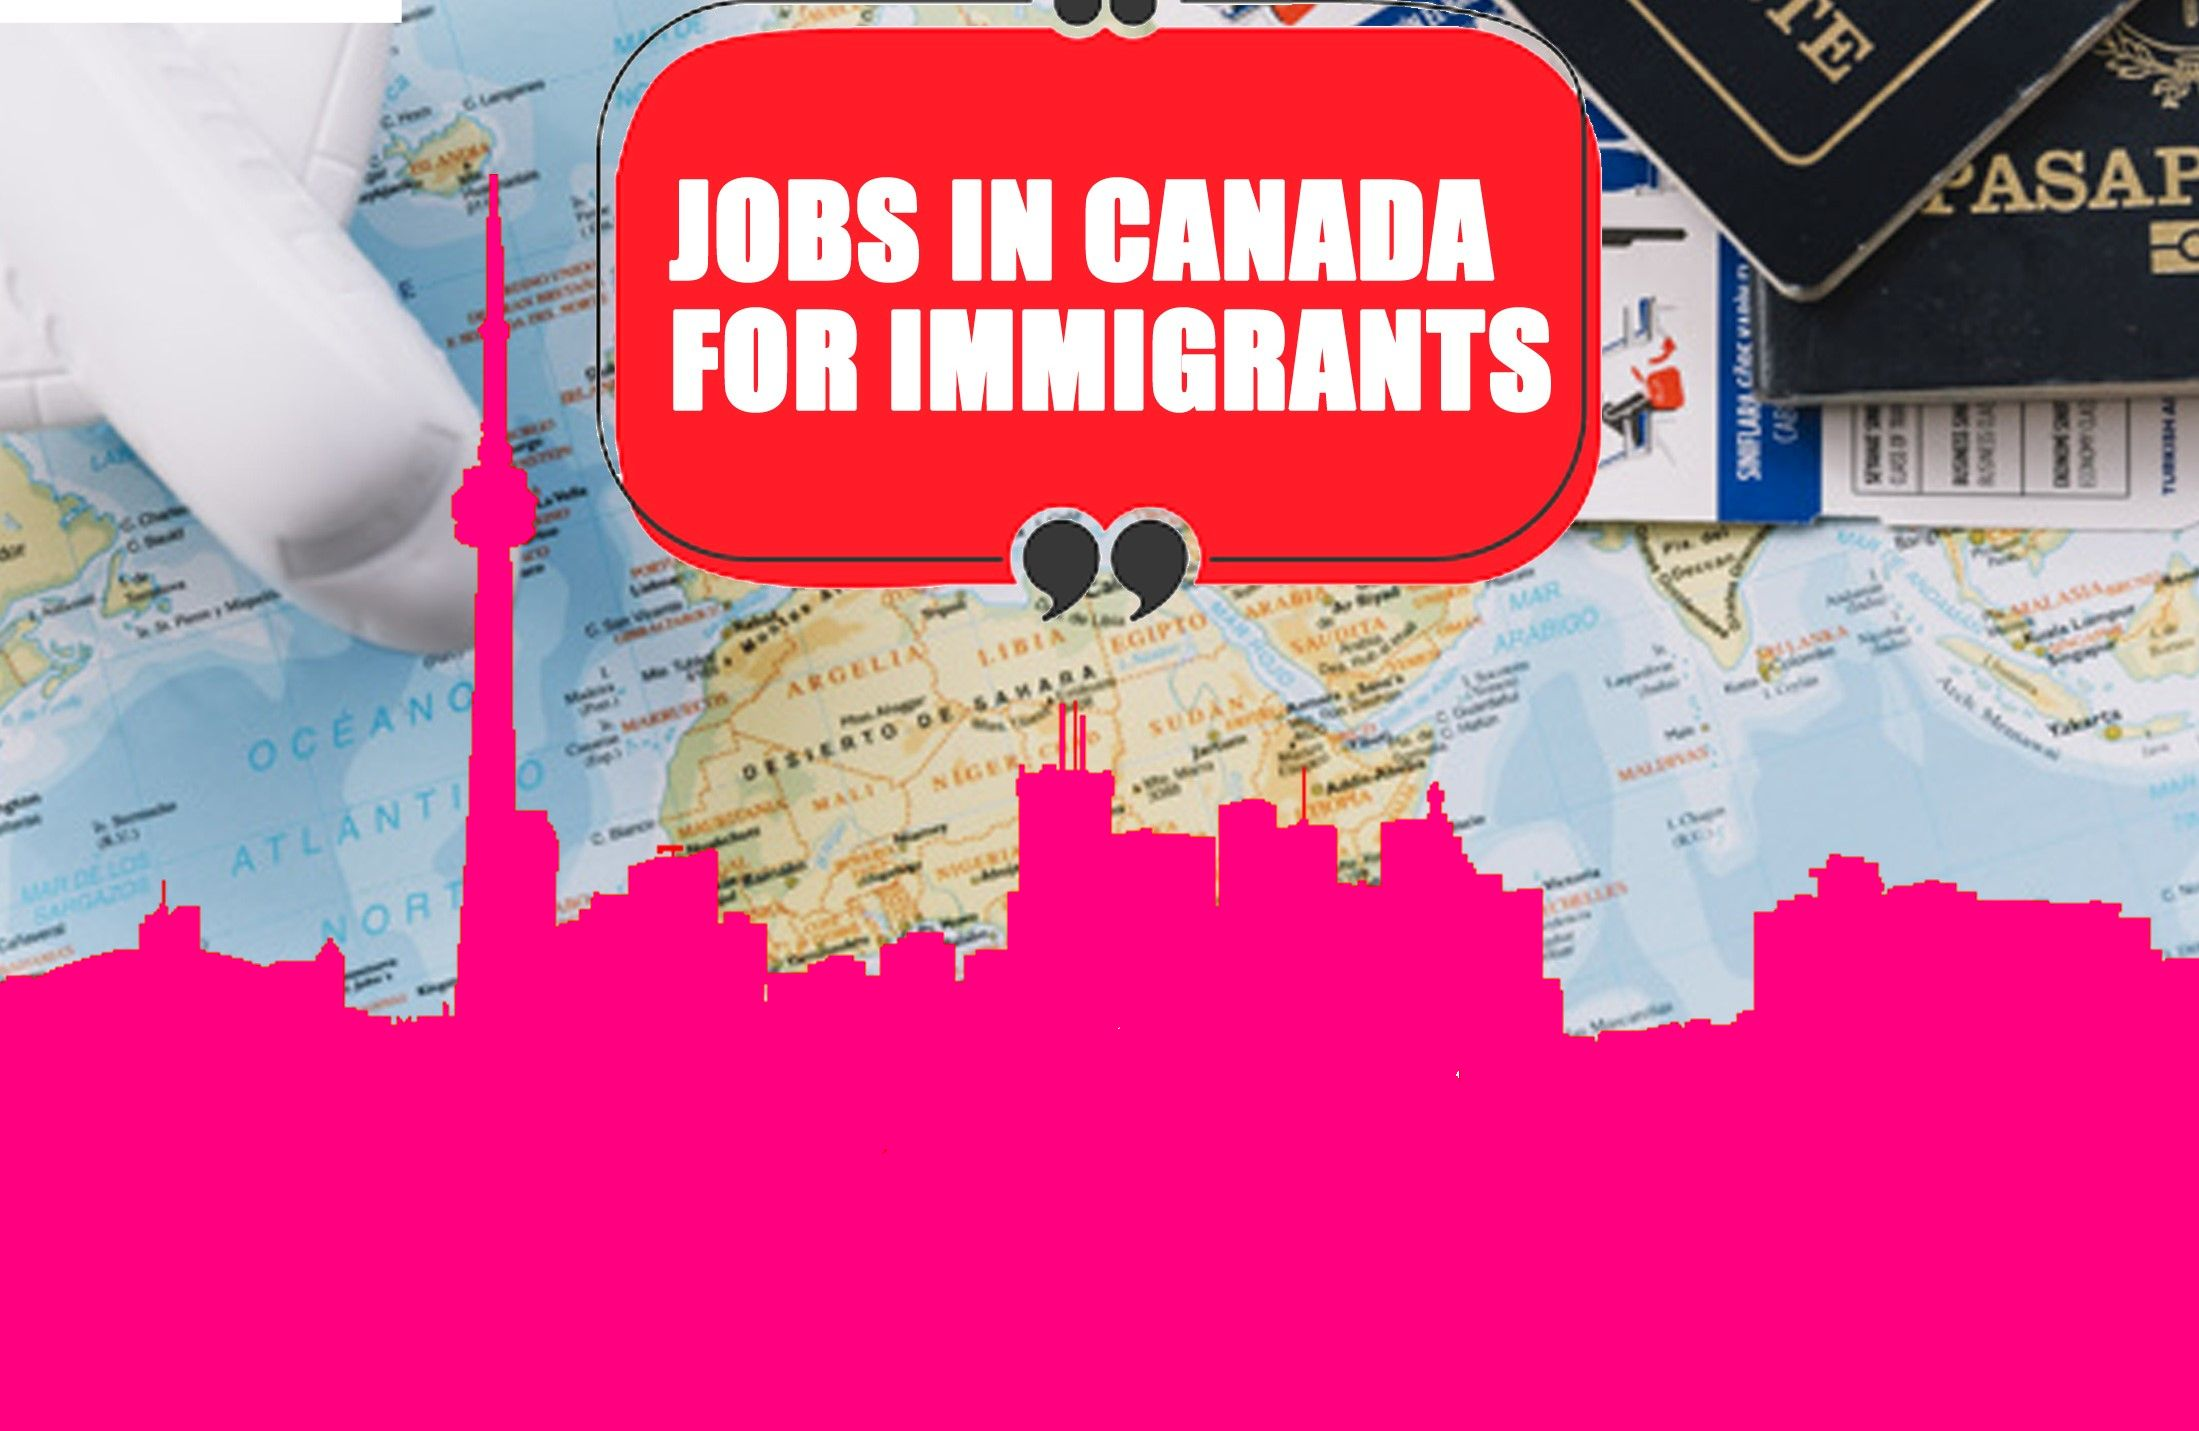 get job first then immigrate to canada